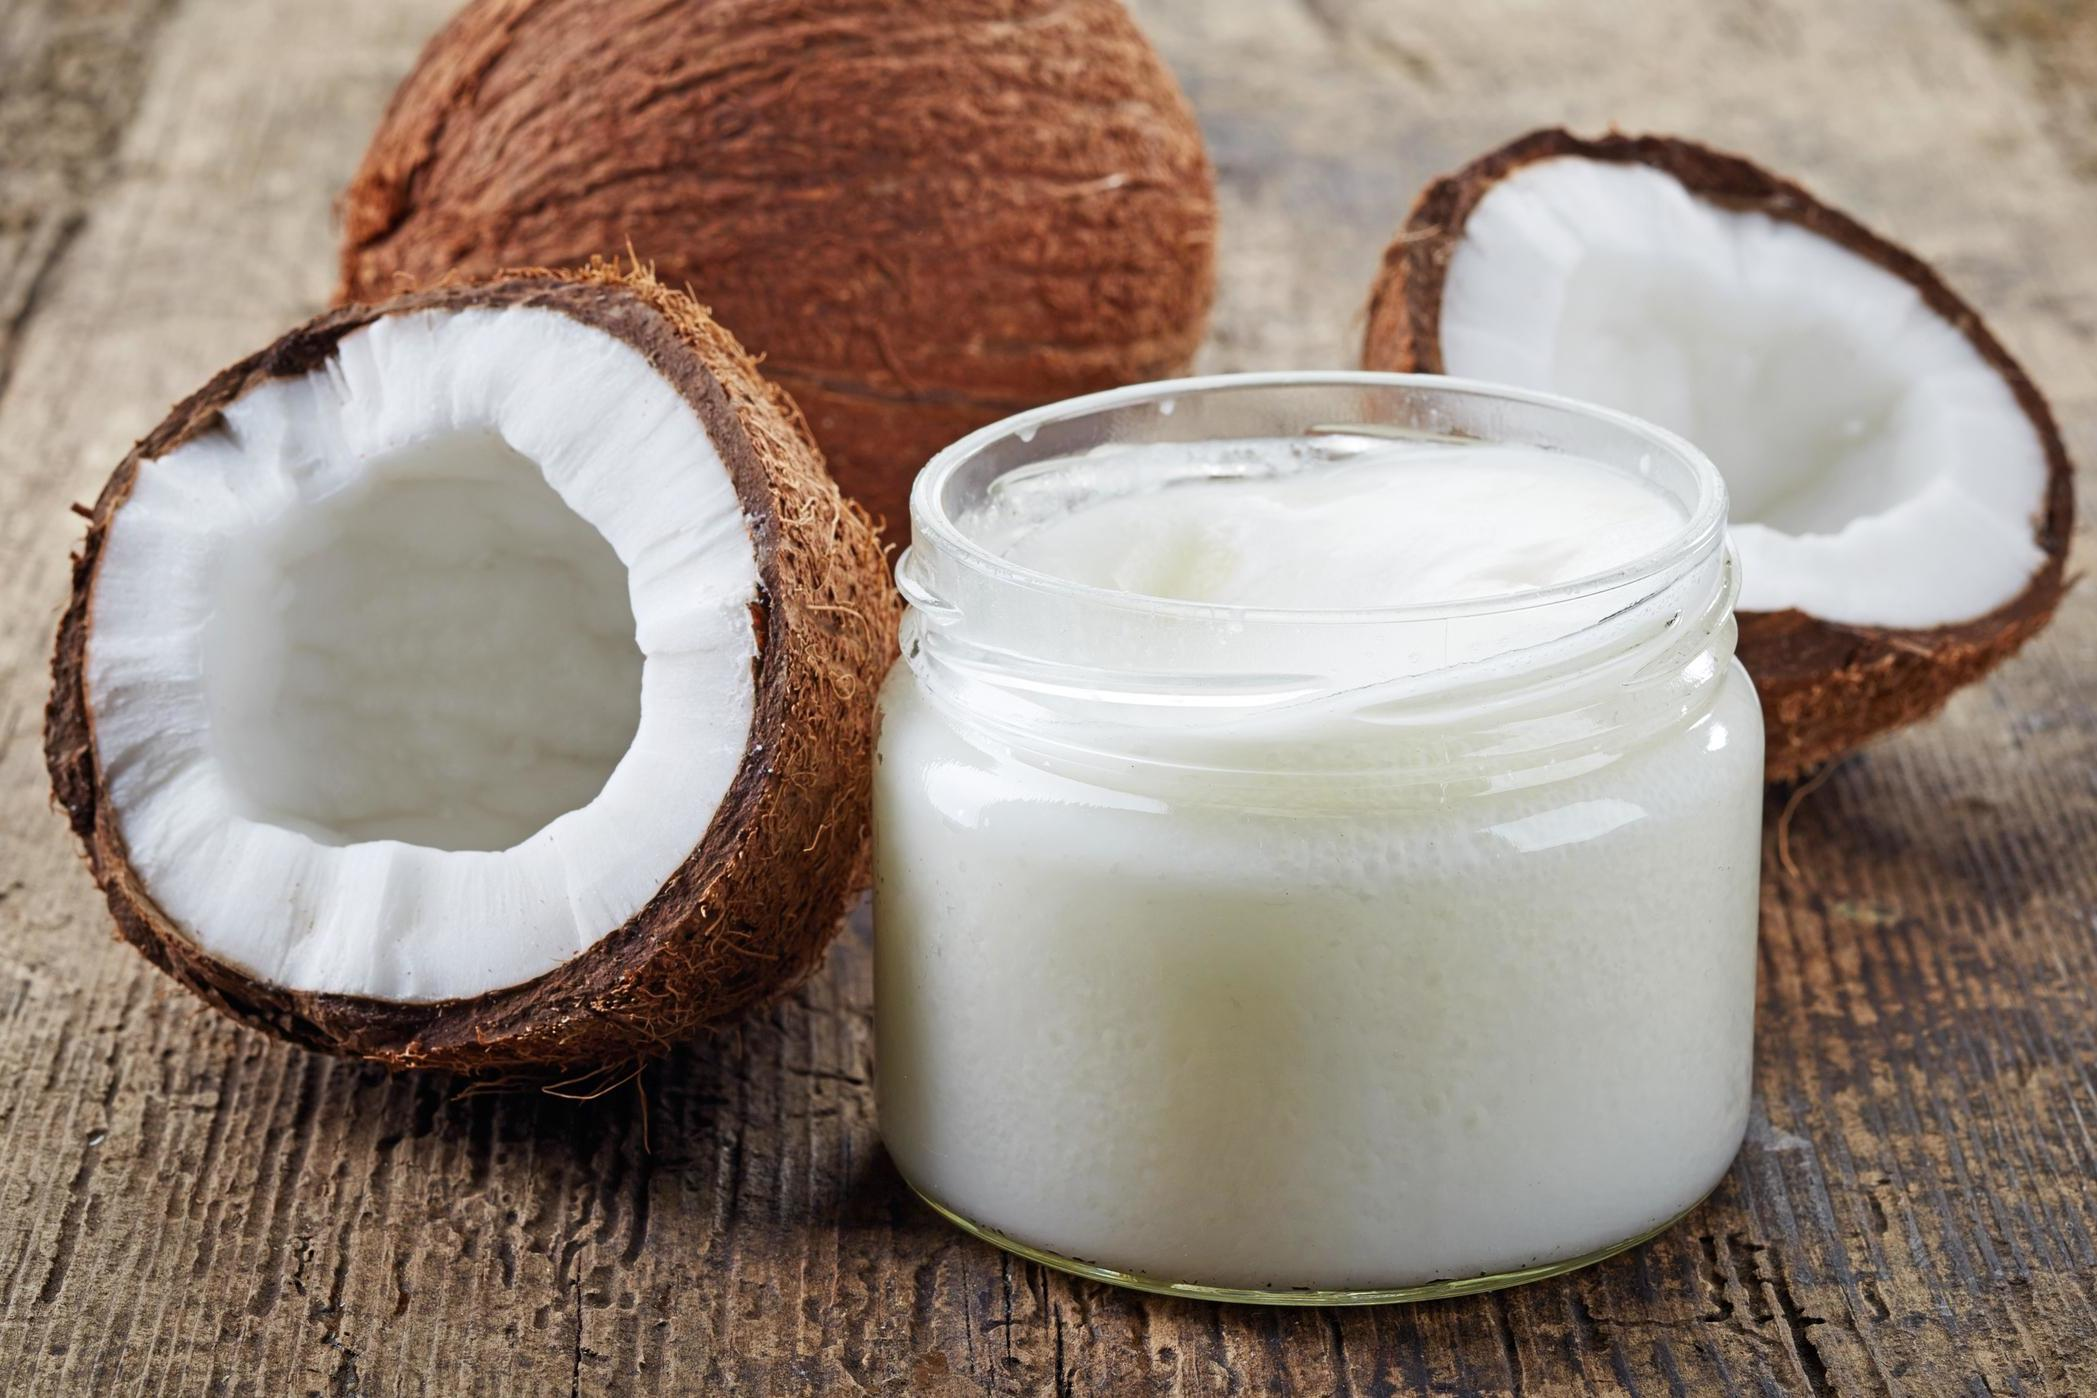 Coconut oil may reduce risk of heart disease, finds new study